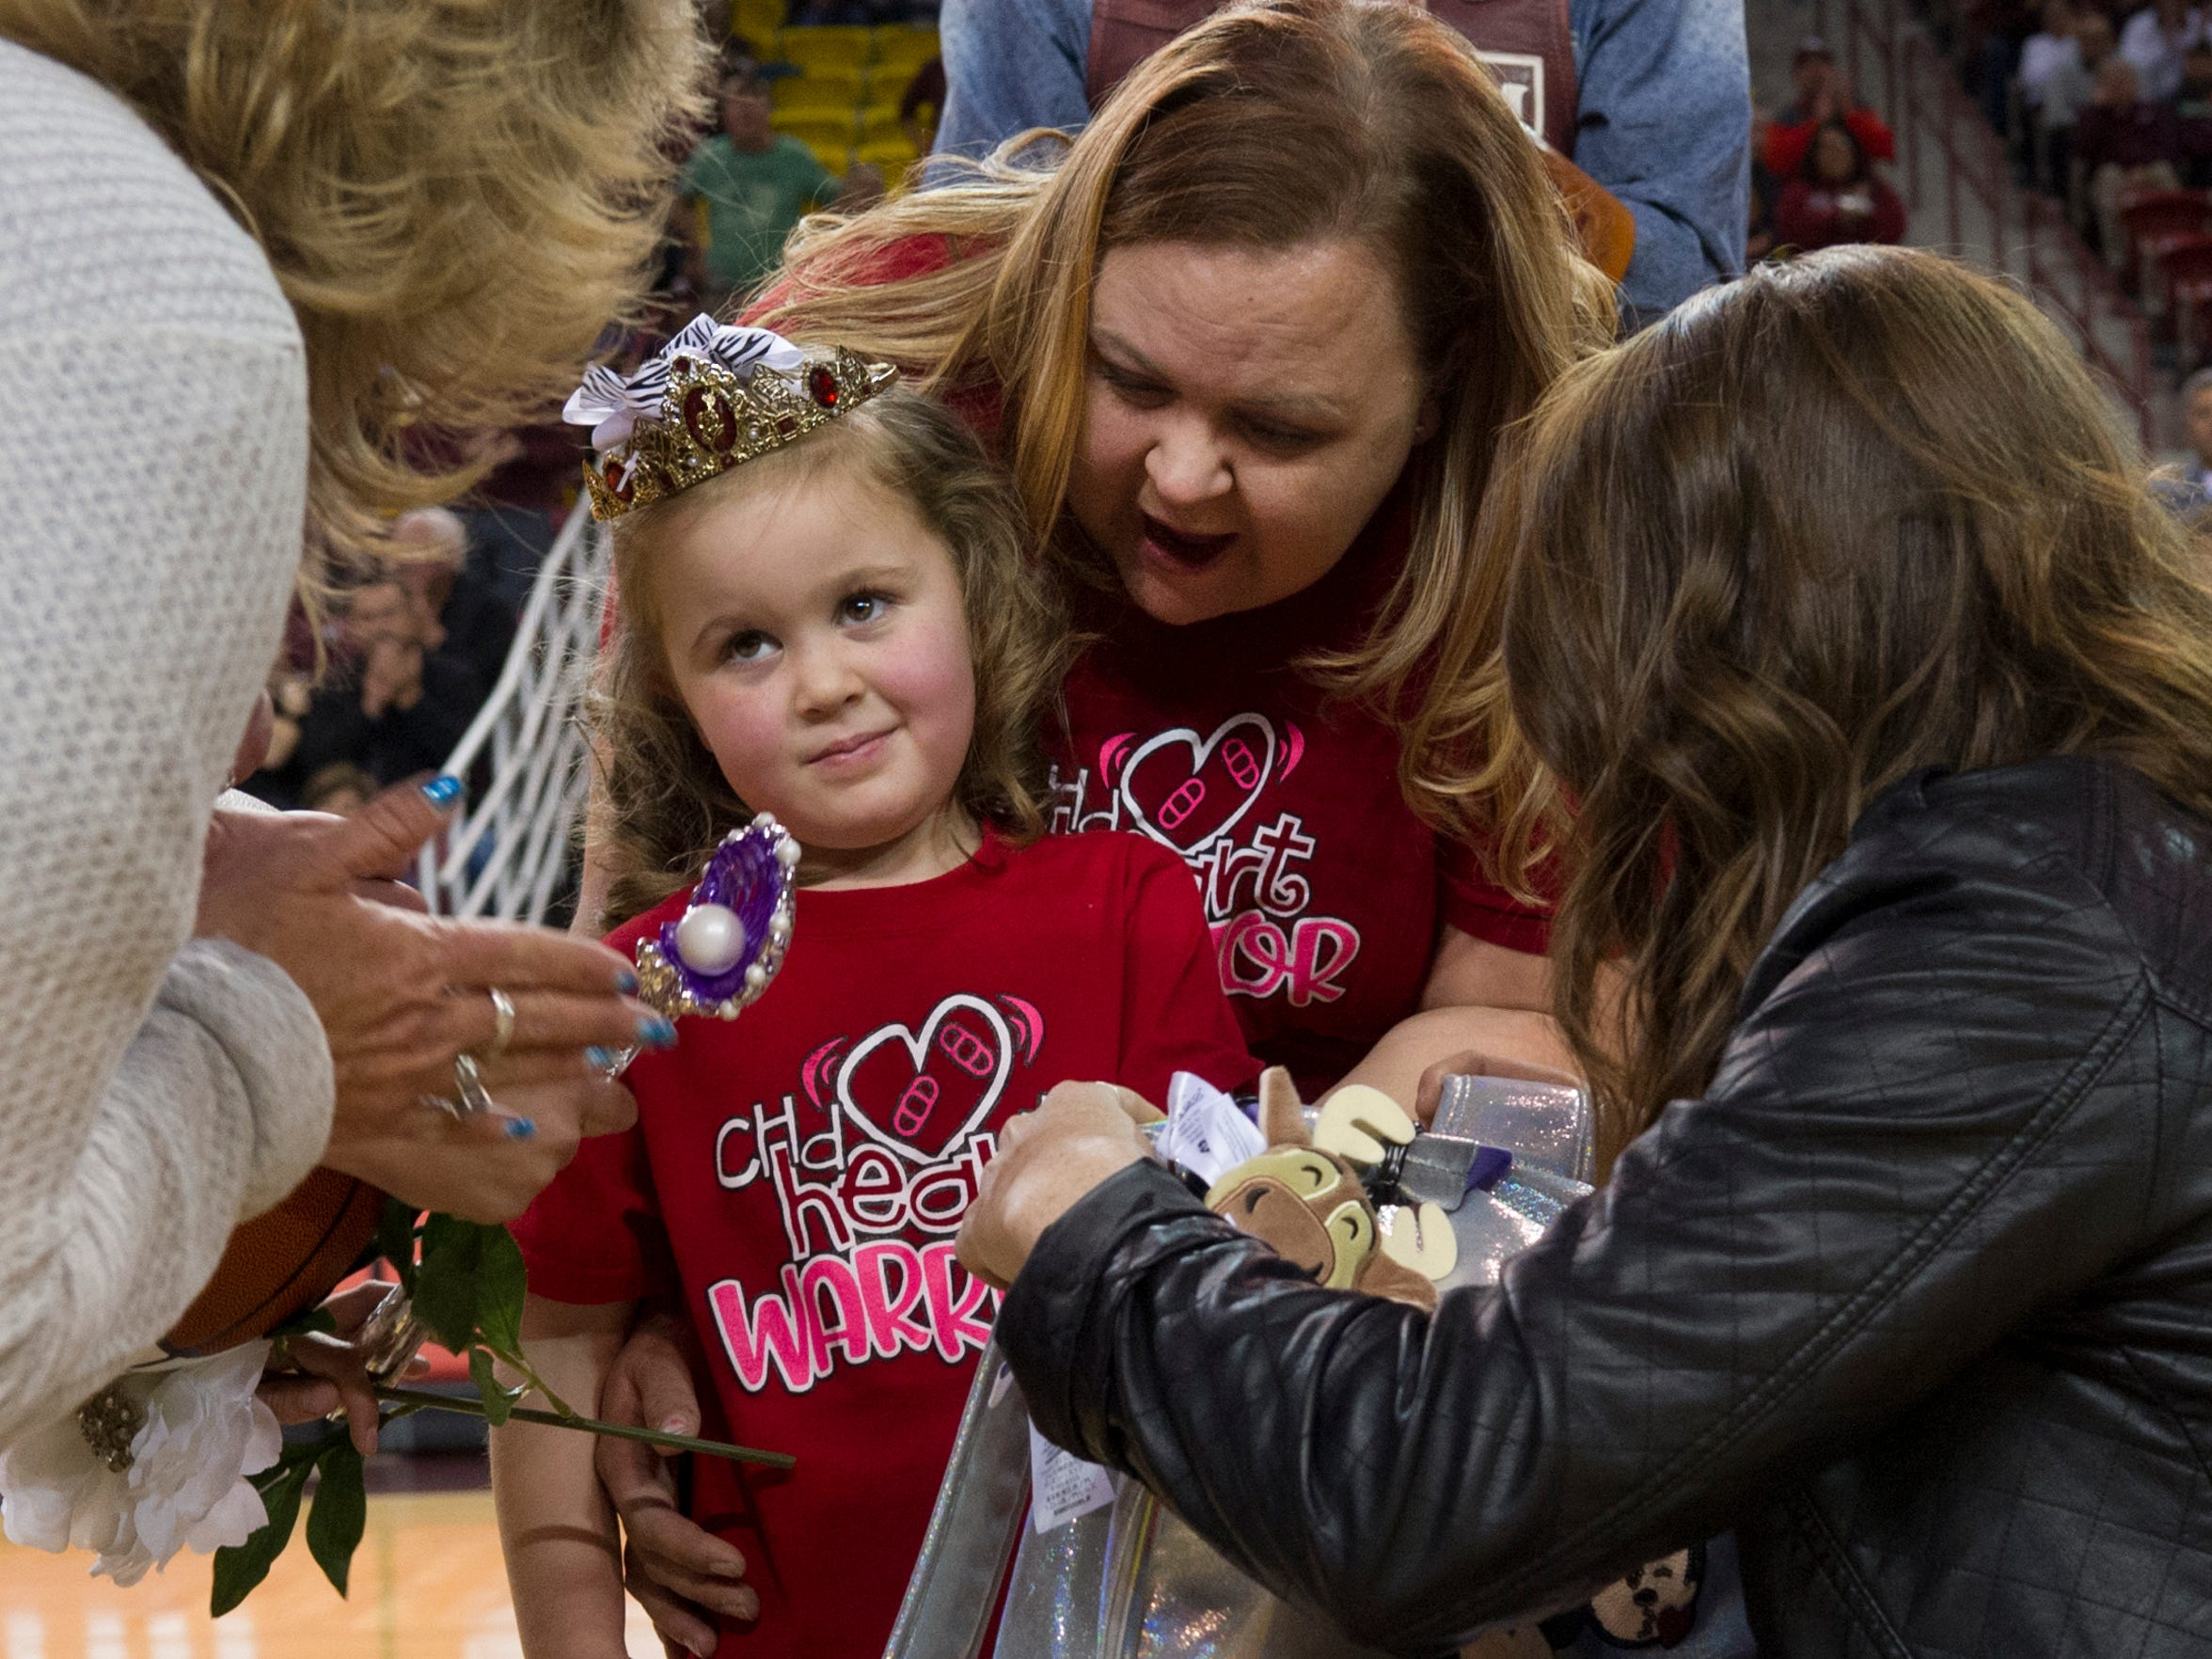 Dana Jorgensen, left, of Make a Wish-A-Wish New Mexico, talks with 5-year-old Kayla Maki of Las Cruces, and her mother, Ashley Maki. Kayla Maki, who has a serious heart condition, is set to go to Disney World with her family, thanks to her wish being granted. Also seen is Kelsey Wright, right, a wish granter with the Make-a-Wish New Mexico organization.